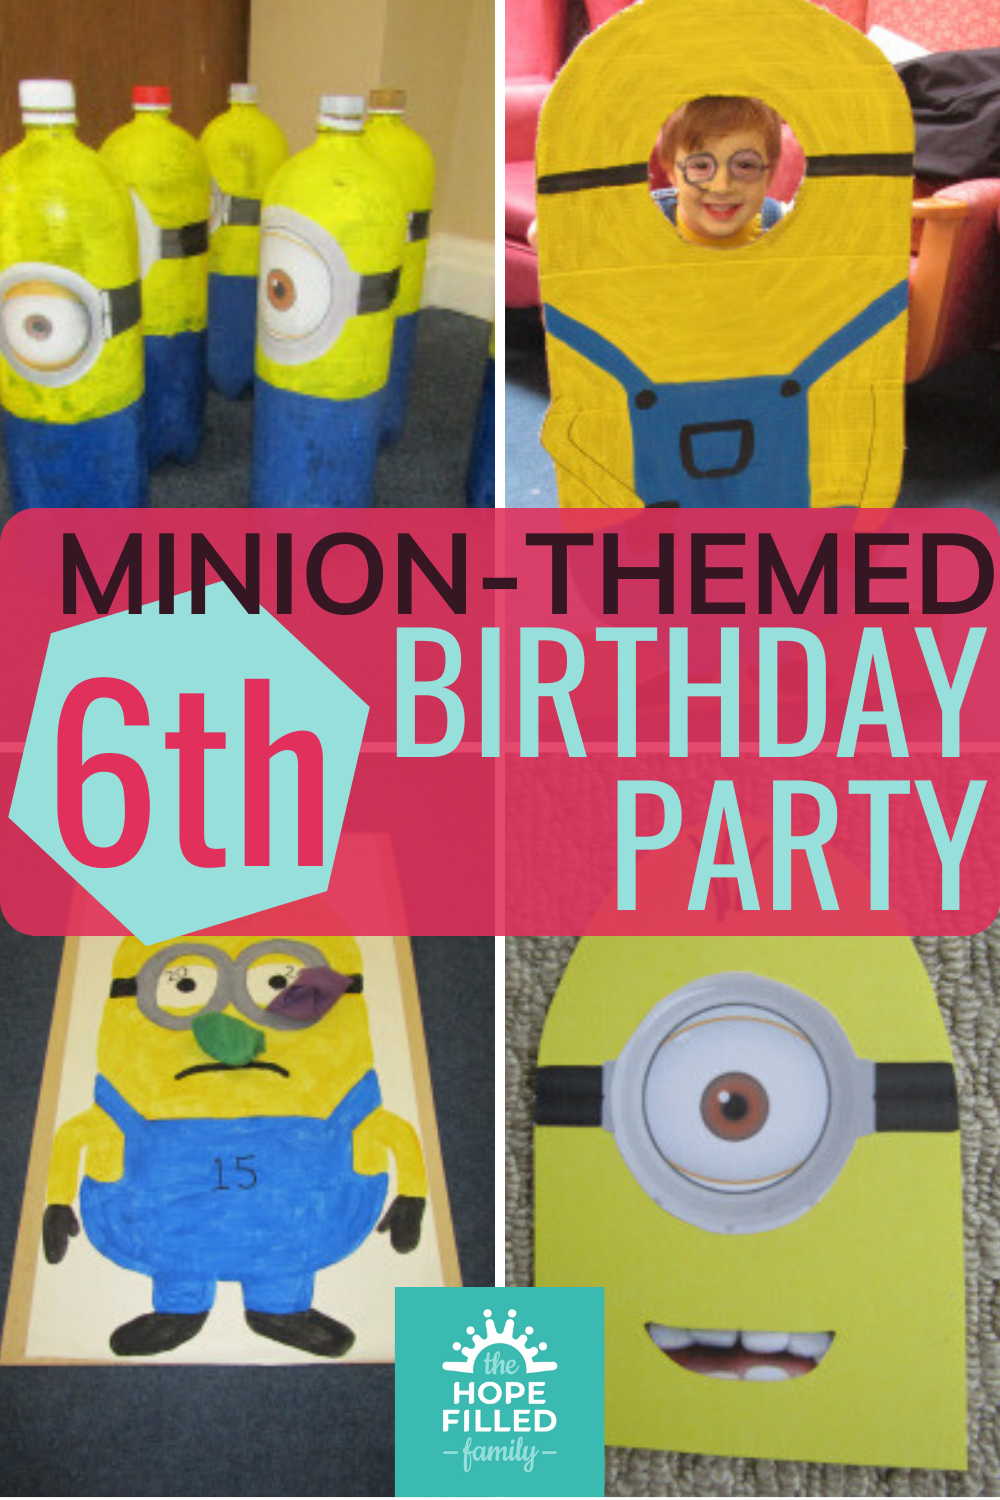 How to plan a Minion-themed 6th birthday party - invitations, games, craft, food, decorations and activities.